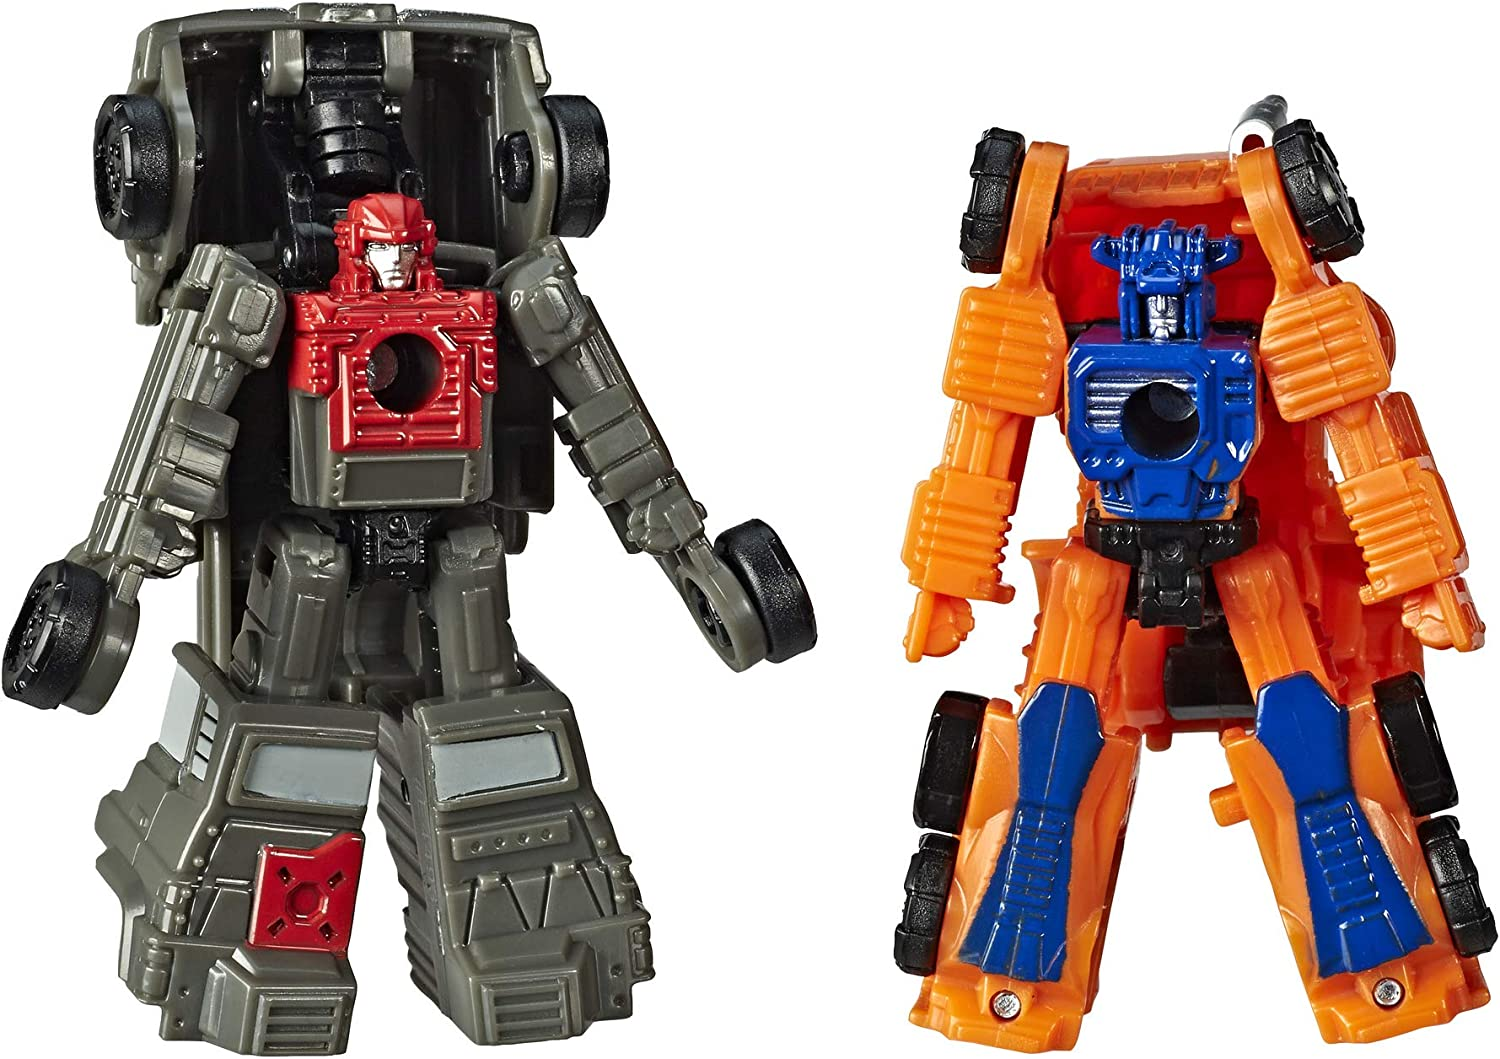 Transformers Toys Generations War for Cybertron: Siege Micromaster Wfc-S33 Autobot Off-Road Patrol 2-Pack - Adults and Kids Ages 8 and Up, 1.5-Inch